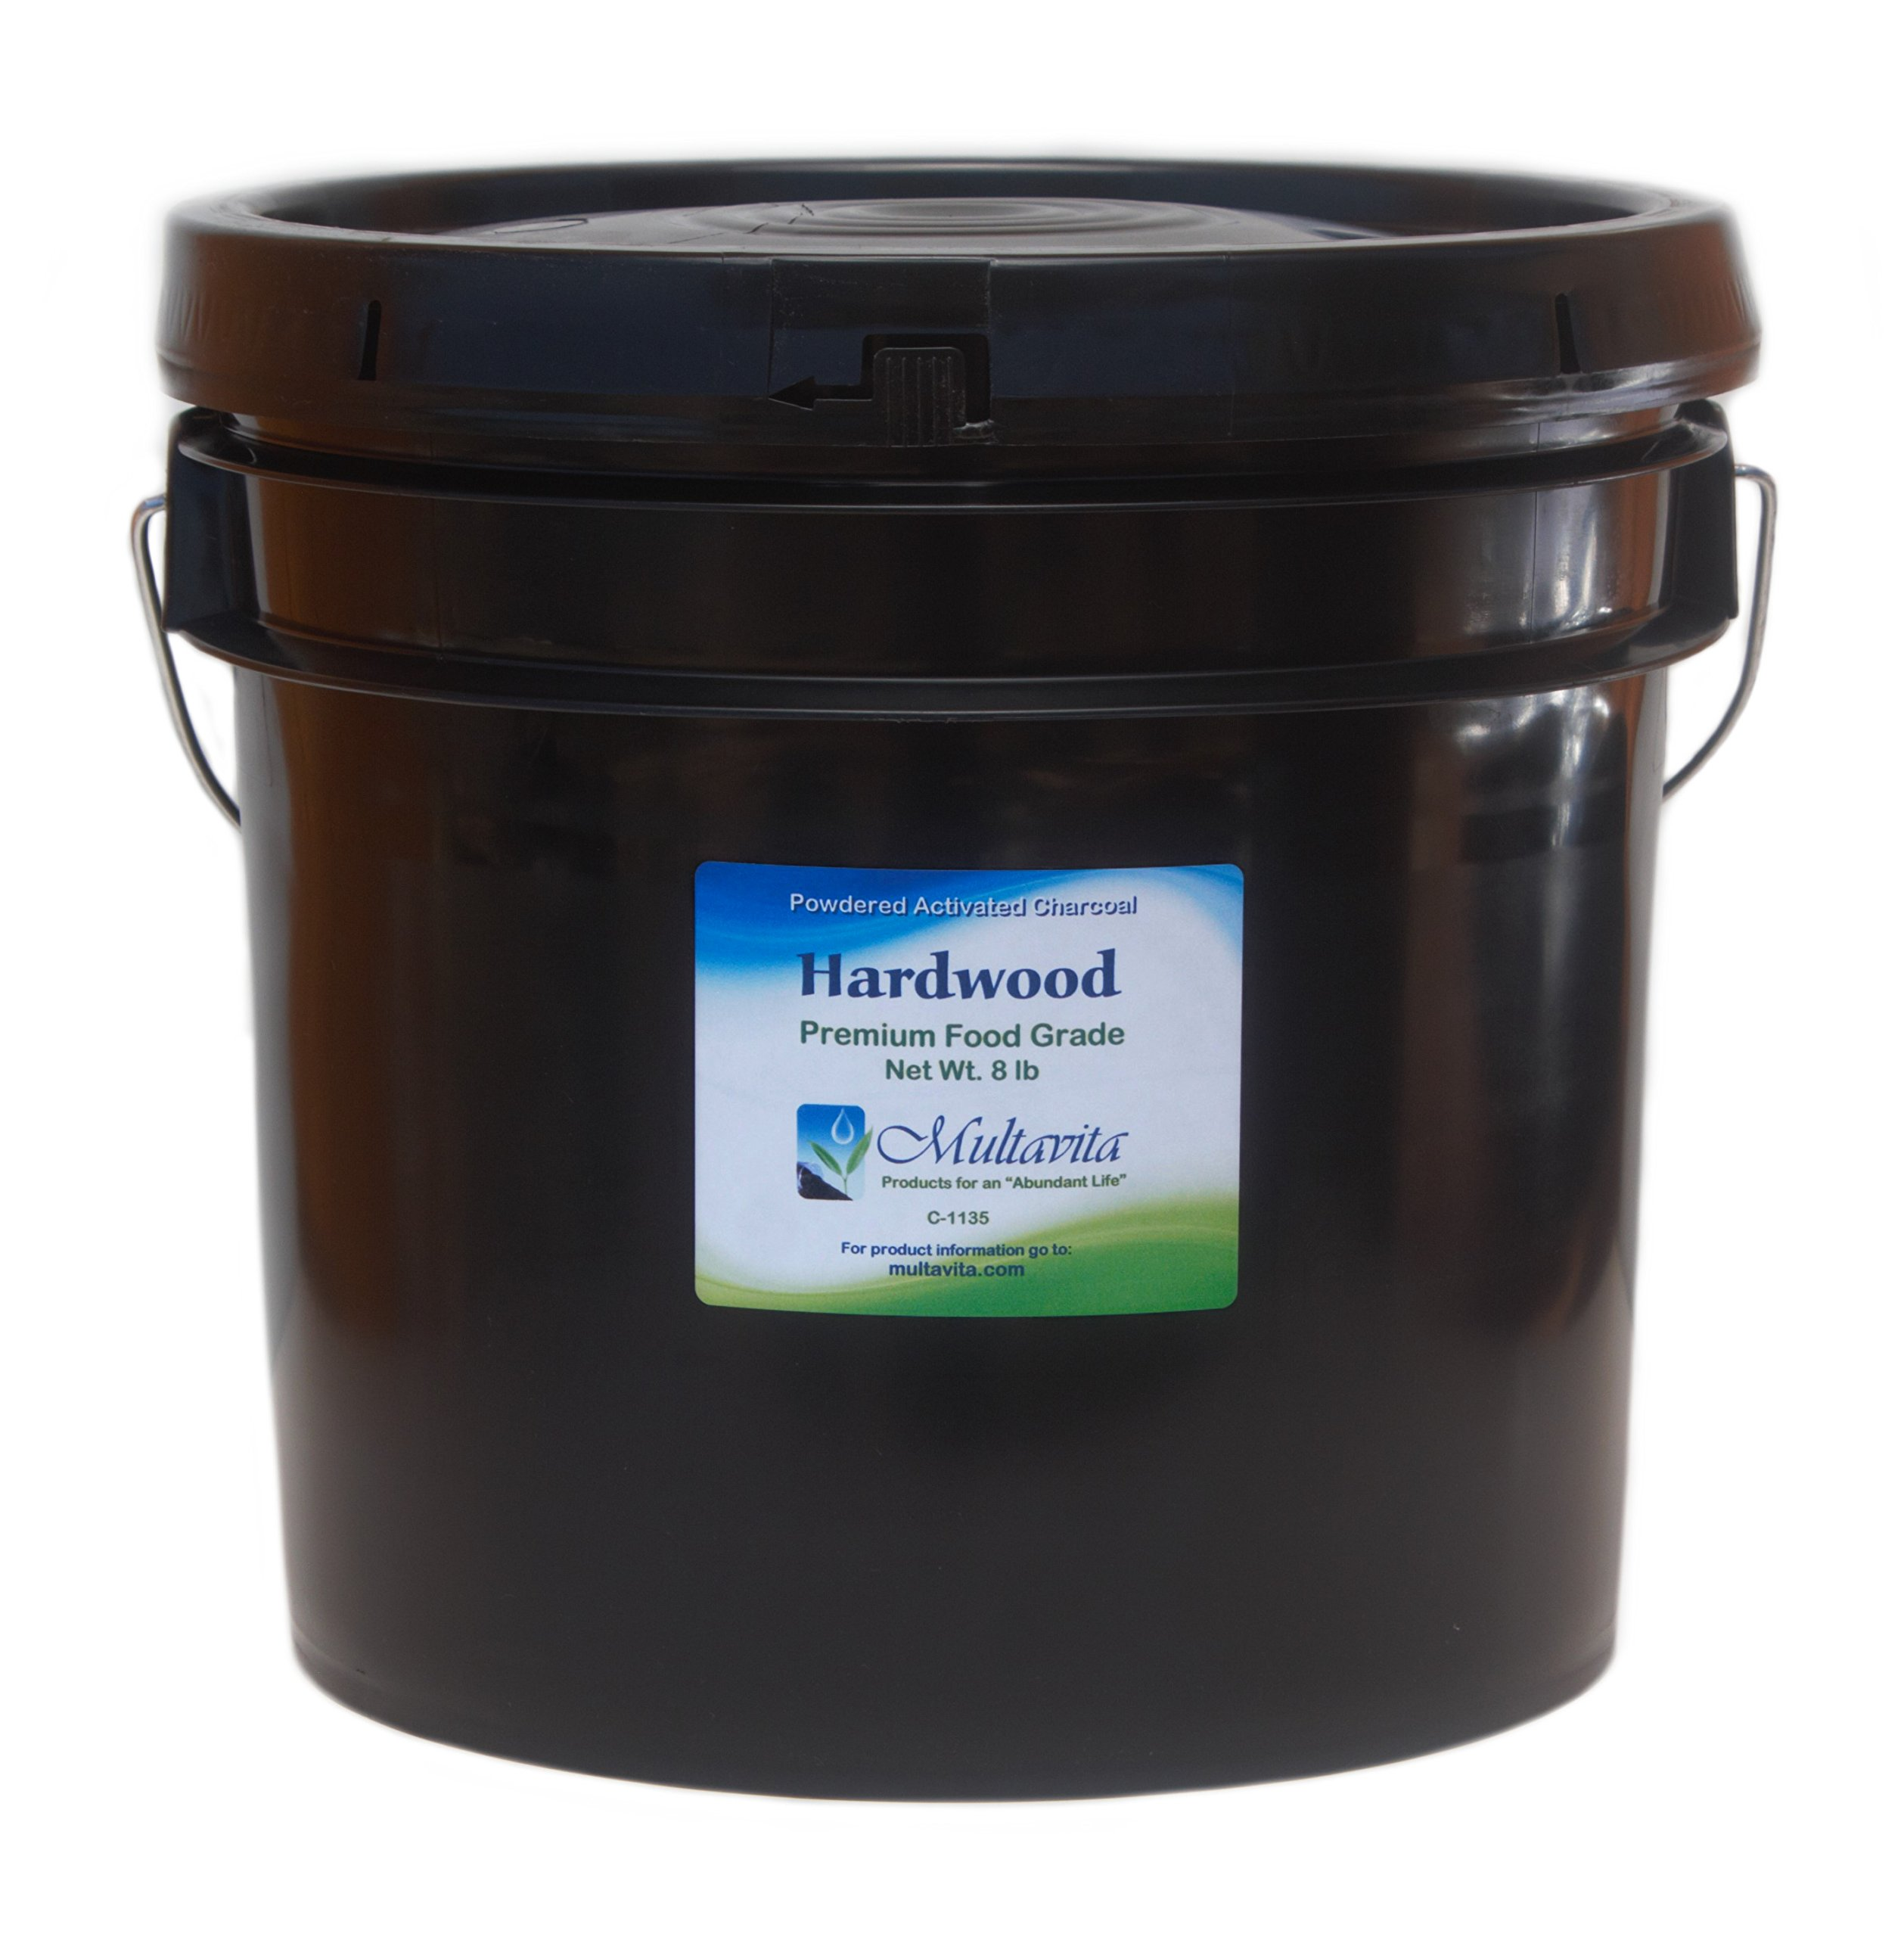 8 lb Hardwood Activated Charcoal Powder Premium Food Grade USA in Pail